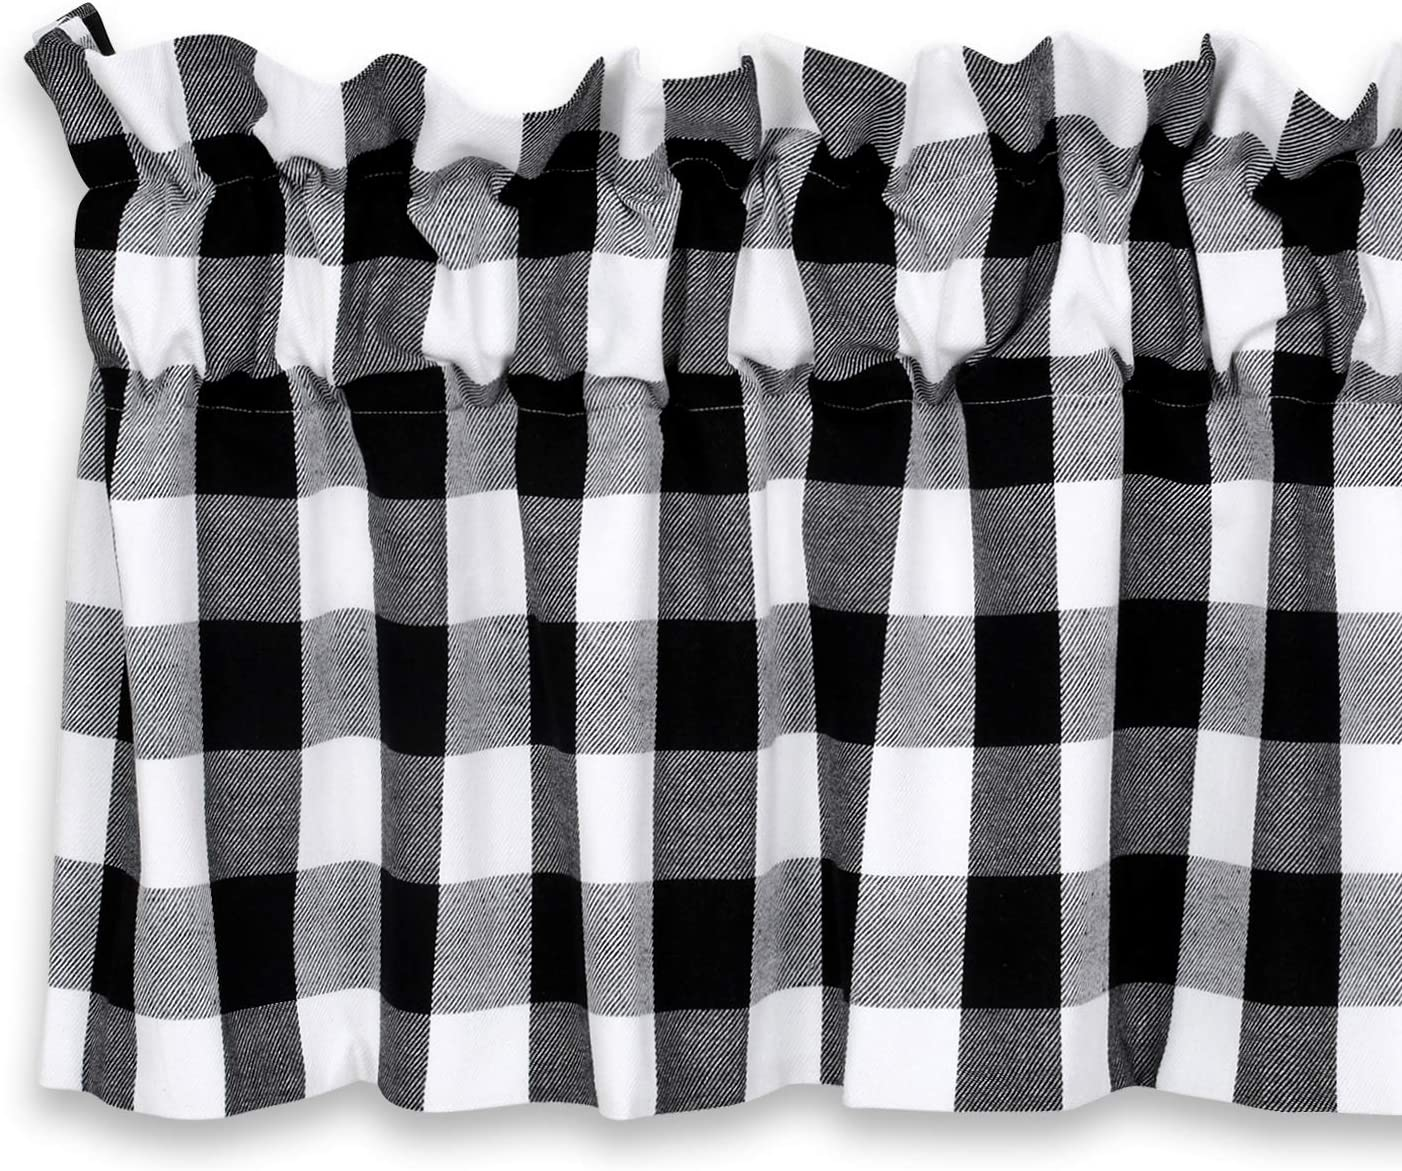 Cackleberry Home Black and White Buffalo Check Valance Curtain Woven Fabric Lined 54 Inches W x 17 Inches L